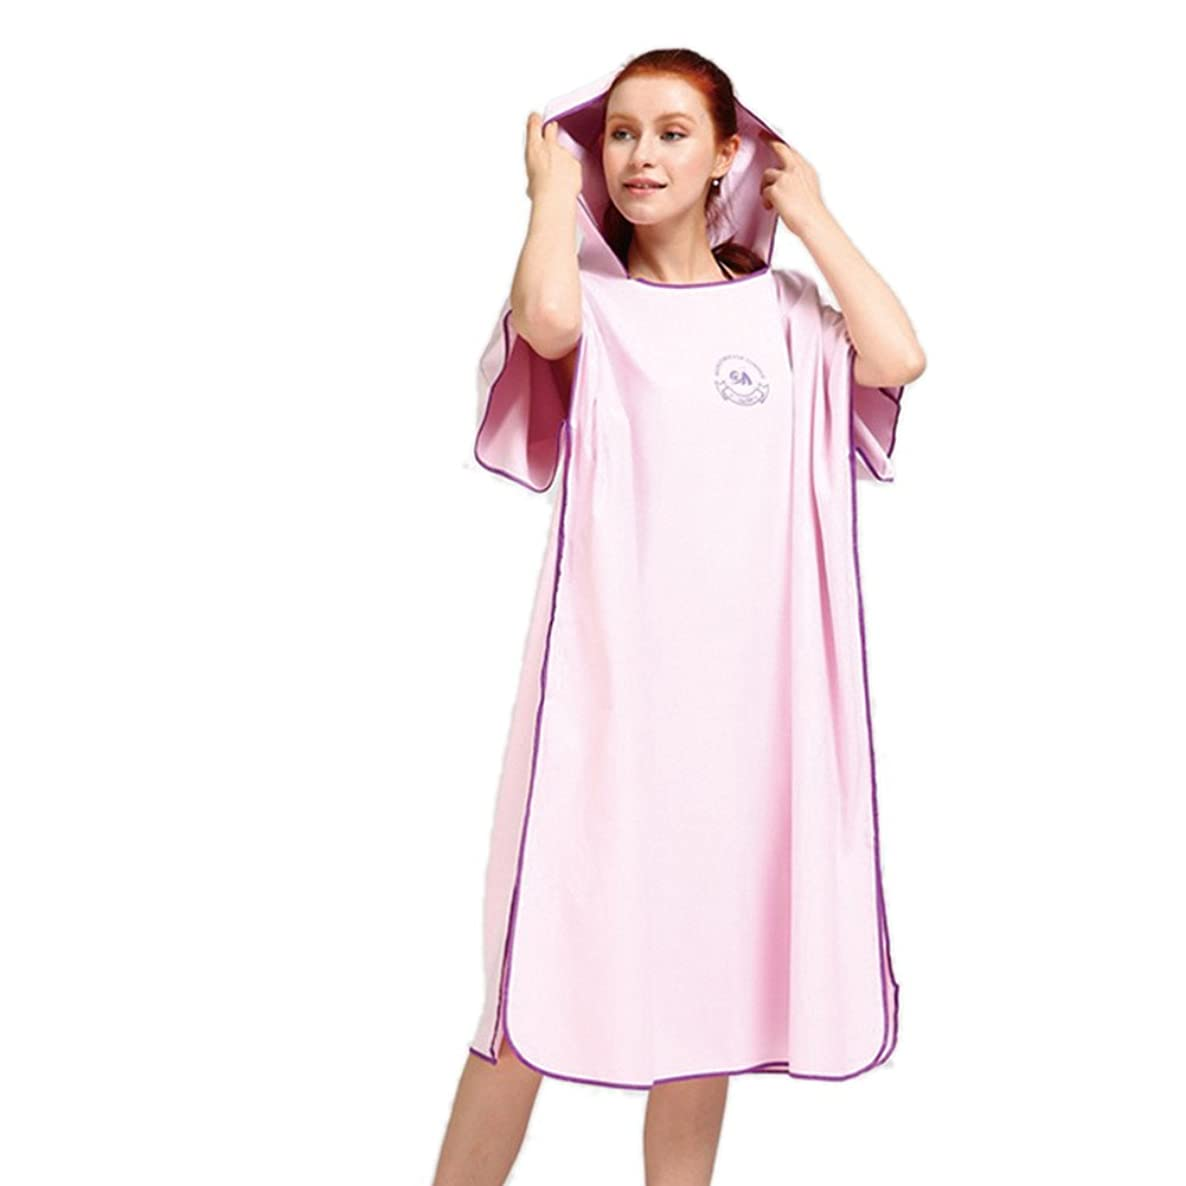 Homeself Changing Robe Towel, Portable Quick-Drying Surf Beach Hooded Poncho Robe, Compact & Light Weight, One Size Fits All (Pink) izkercrspjsqmicw